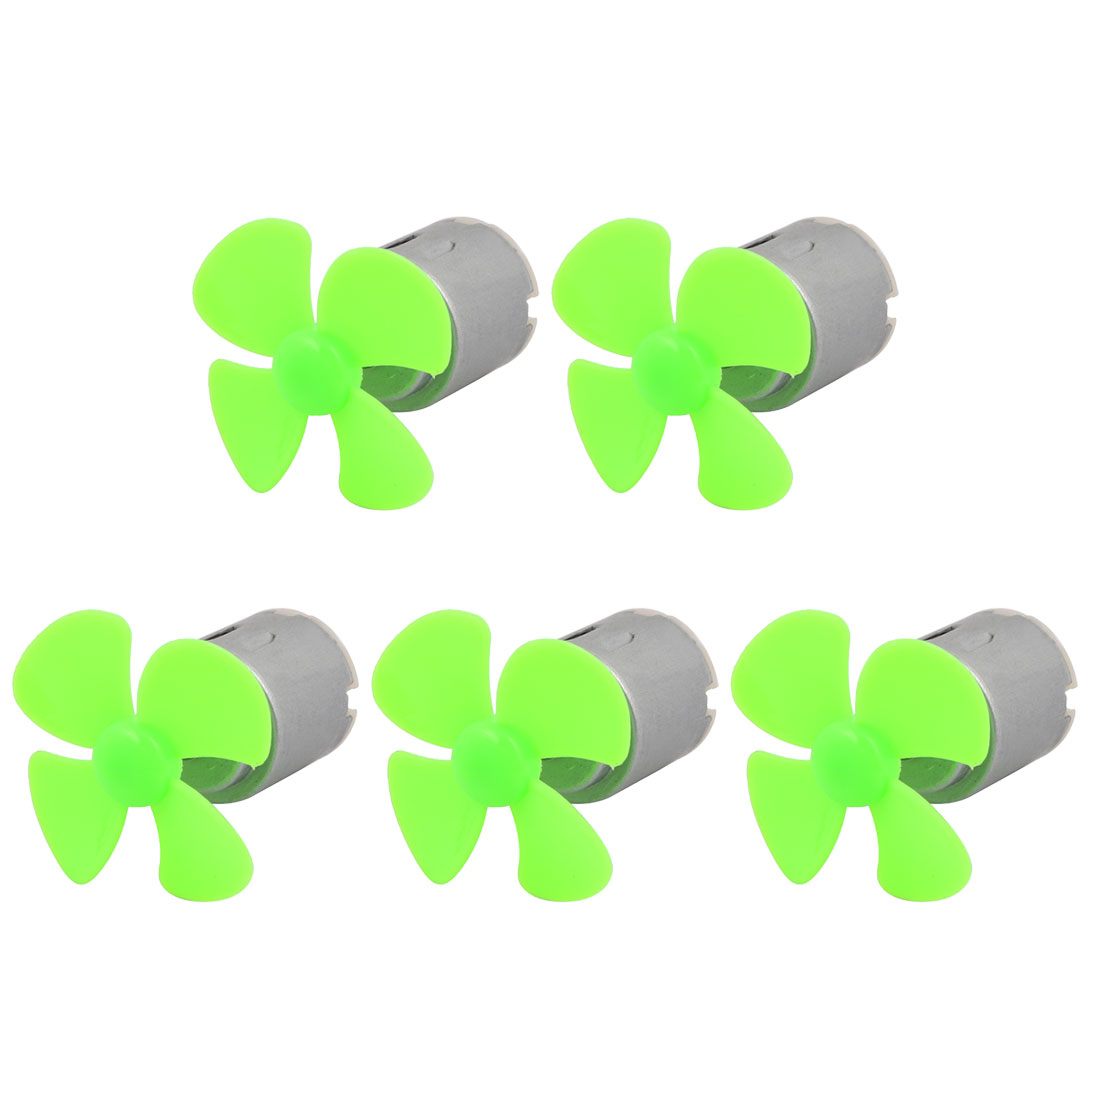 5pcs DC 3V 0.13A 11000RPM Strong Force Motor 4 Vanes 40mm Green Propeller for RC Aircraft